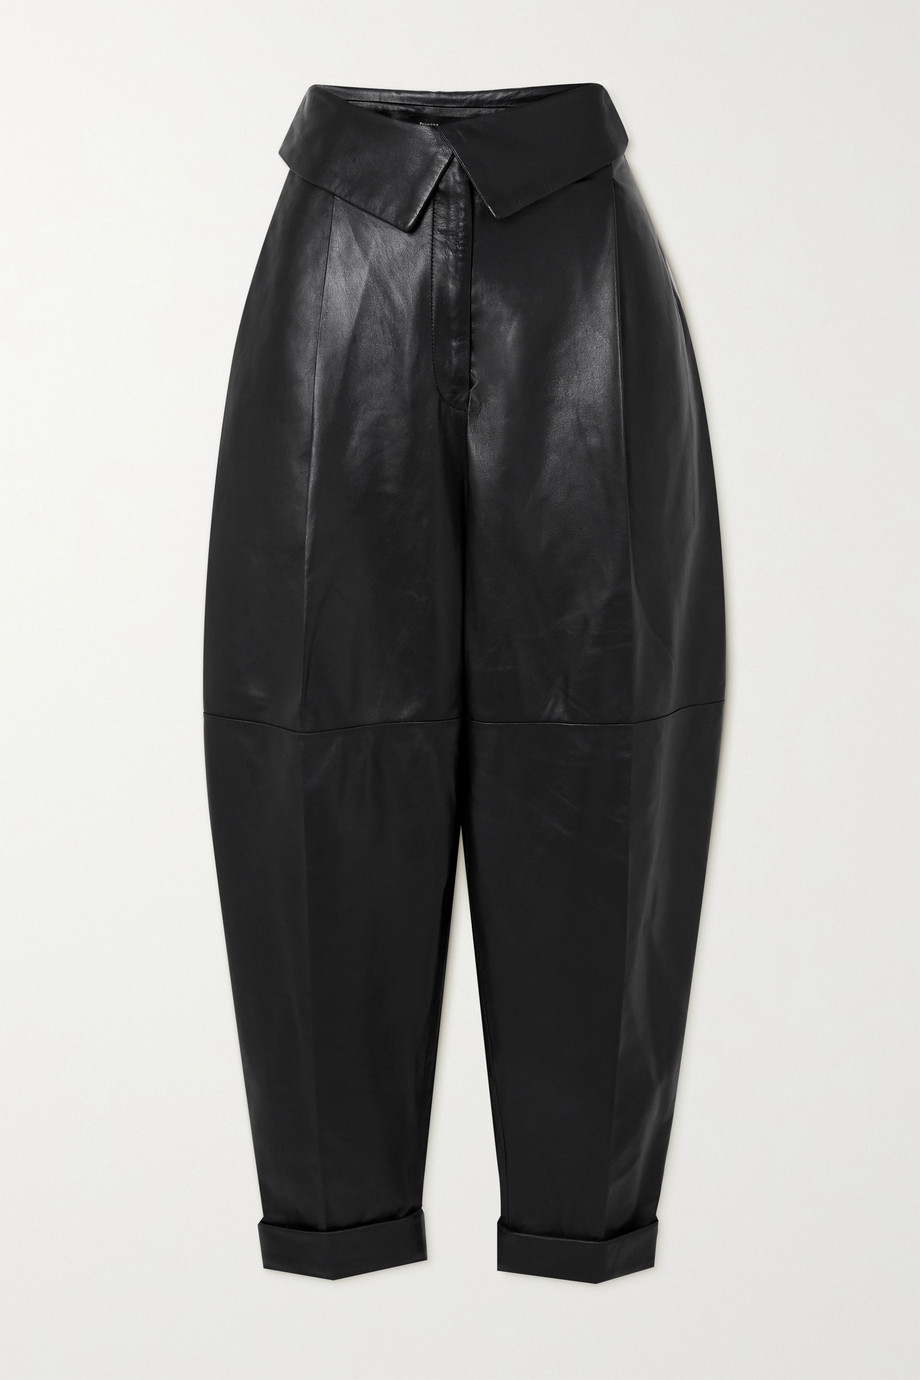 Proenza Schouler Pleated leather tapered pants